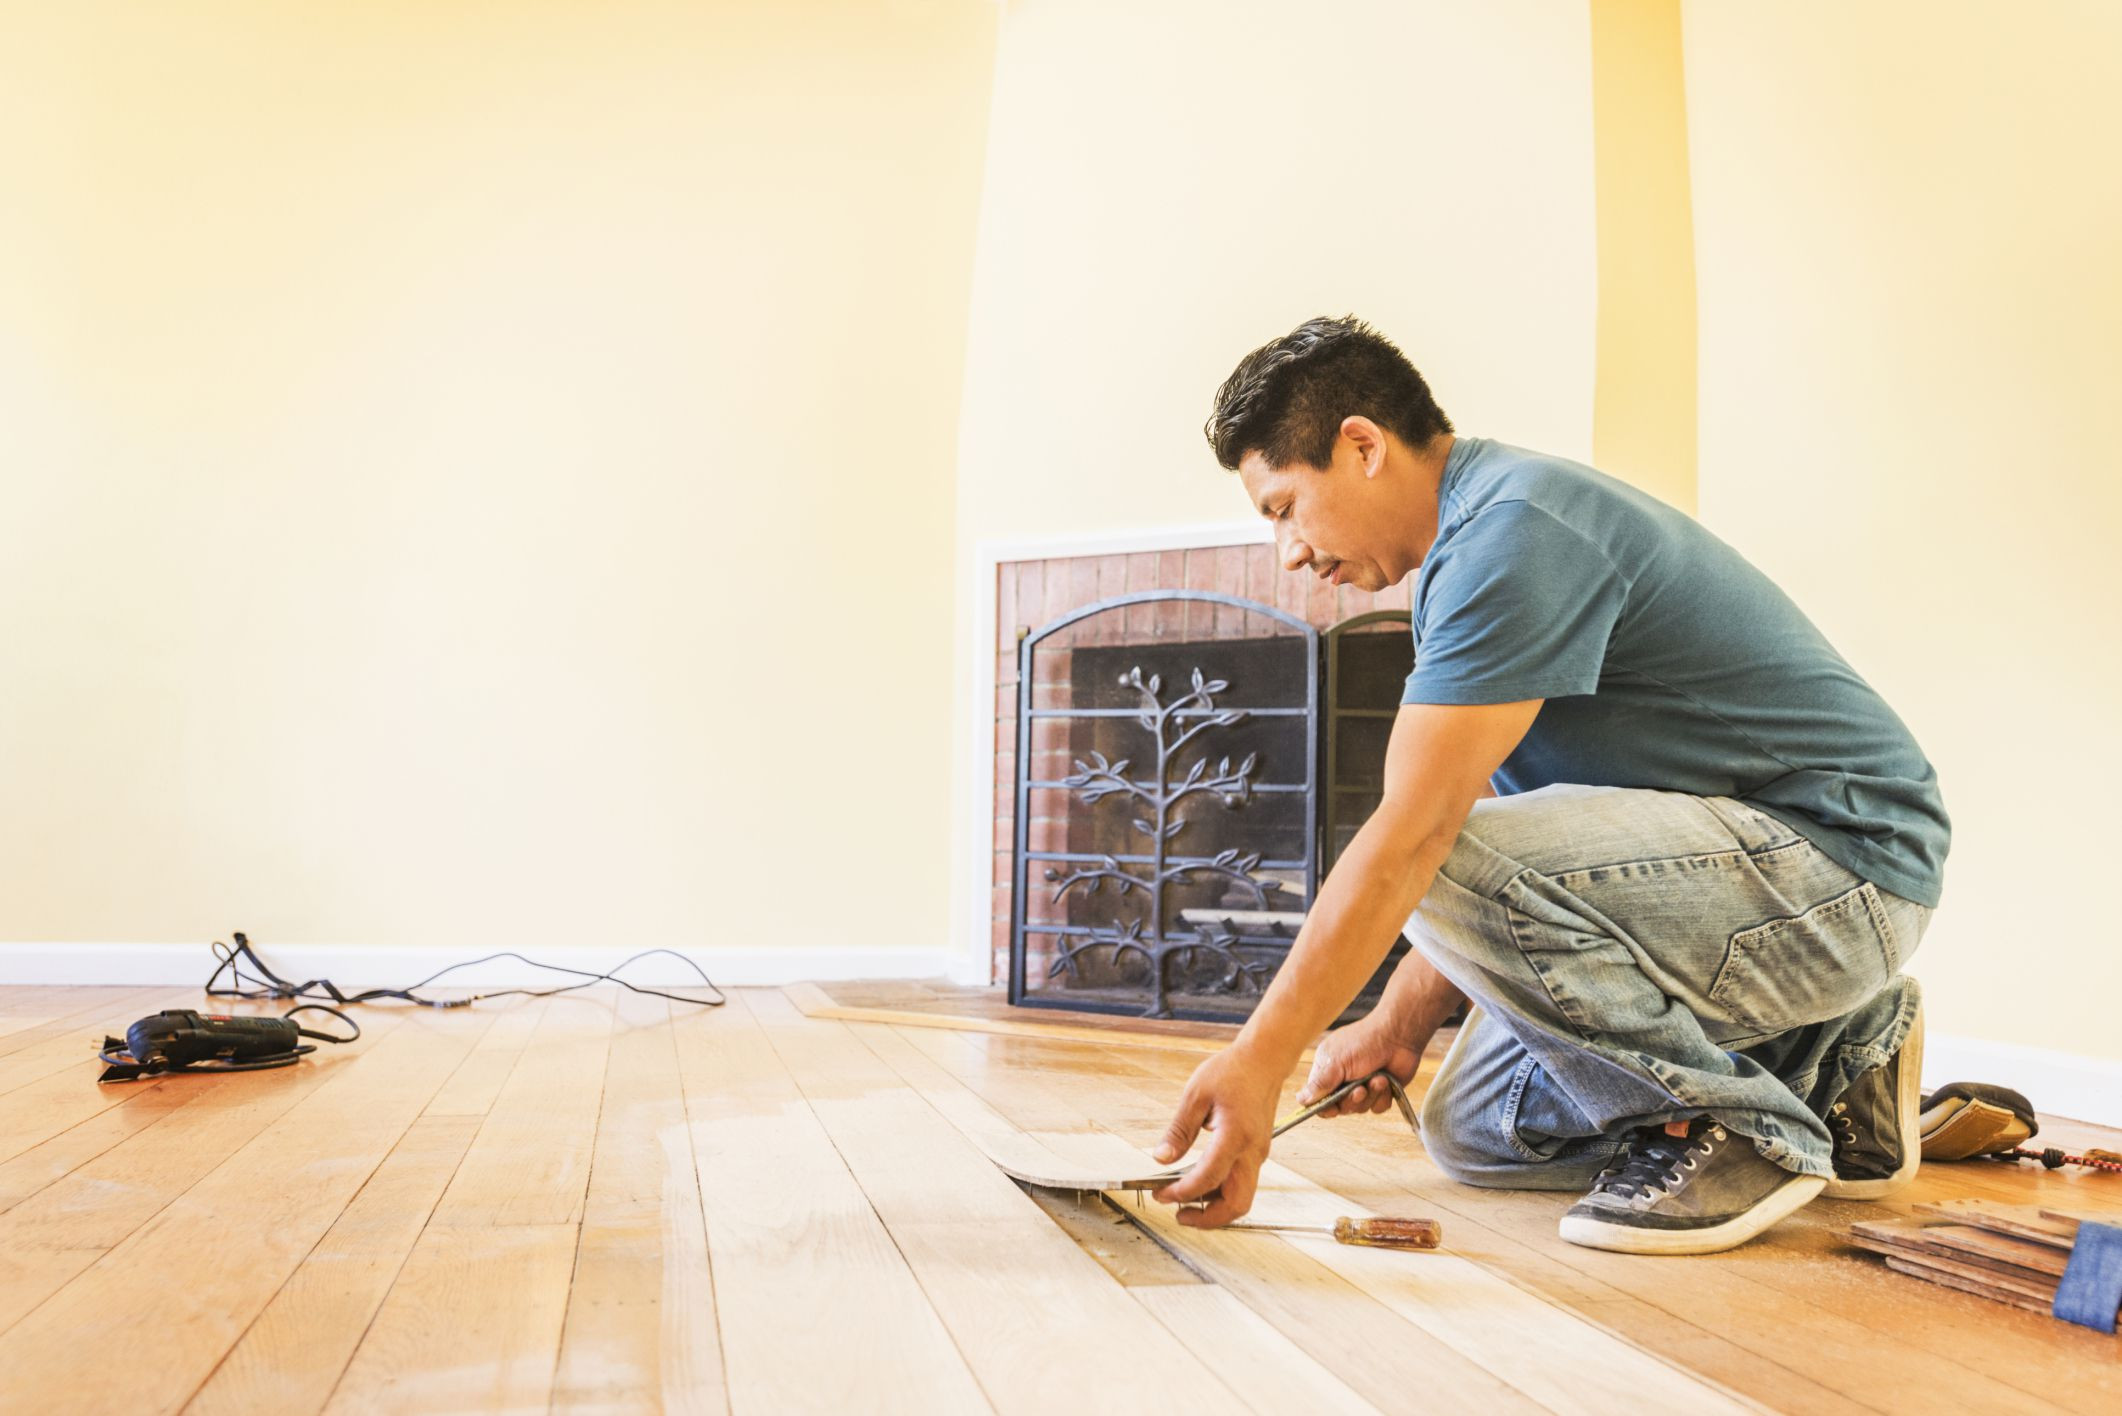 hardwood flooring cost square foot installed of solid hardwood flooring costs for professional vs diy intended for installwoodflooring 592016327 56684d6f3df78ce1610a598a